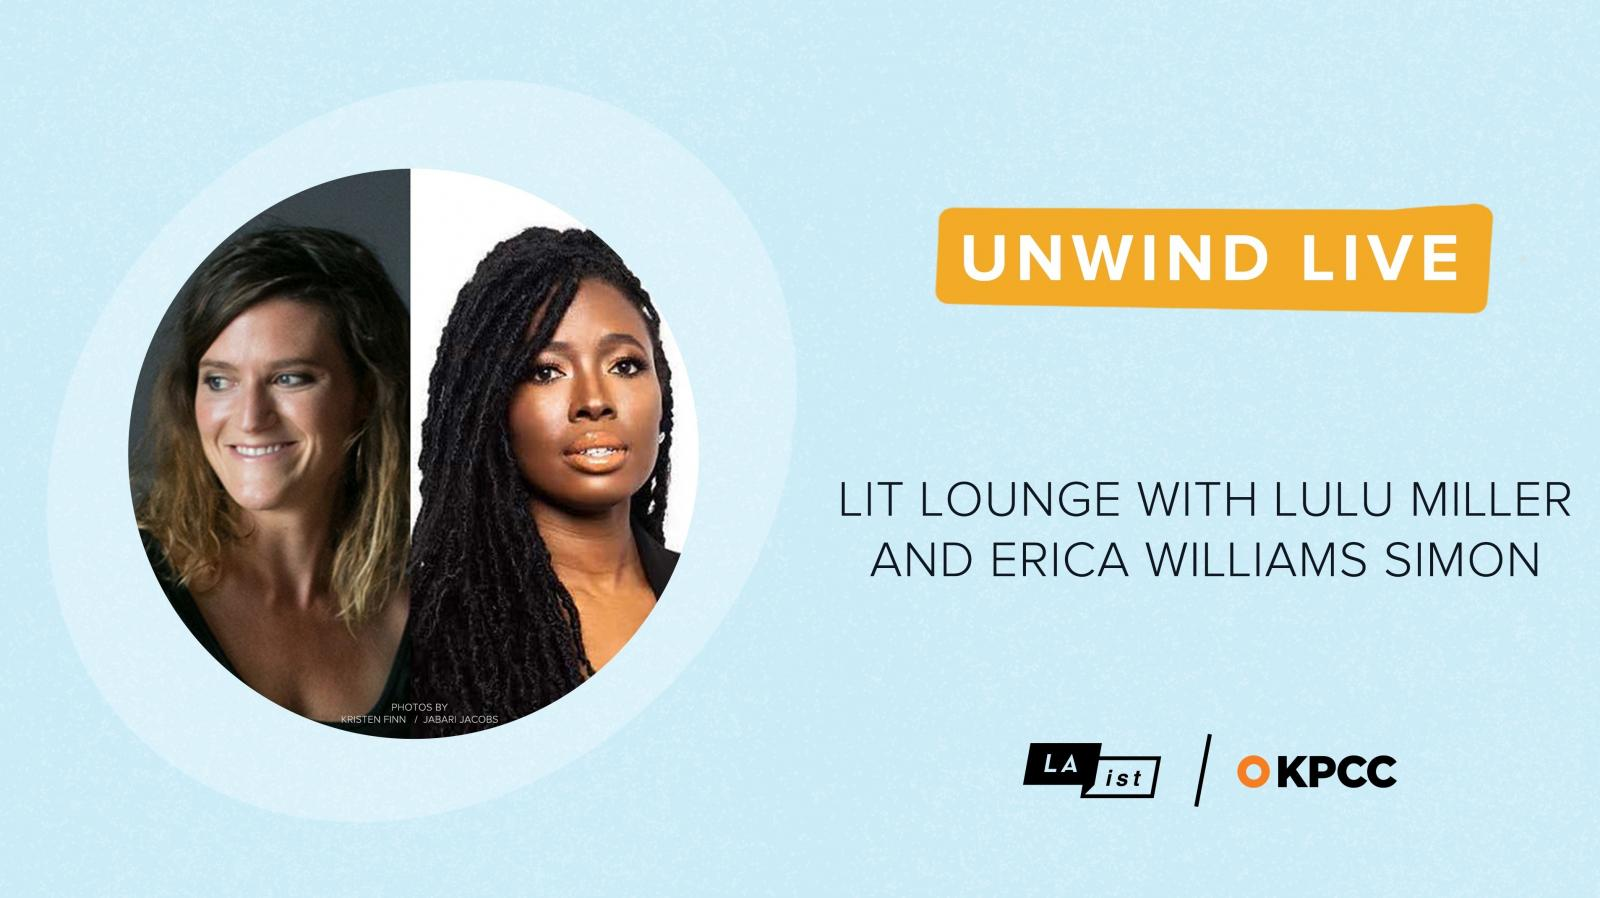 KPCC Presents Unwind Live: Lulu Miller and Erica Williams Simon on Wednesday April 22nd at 4pm